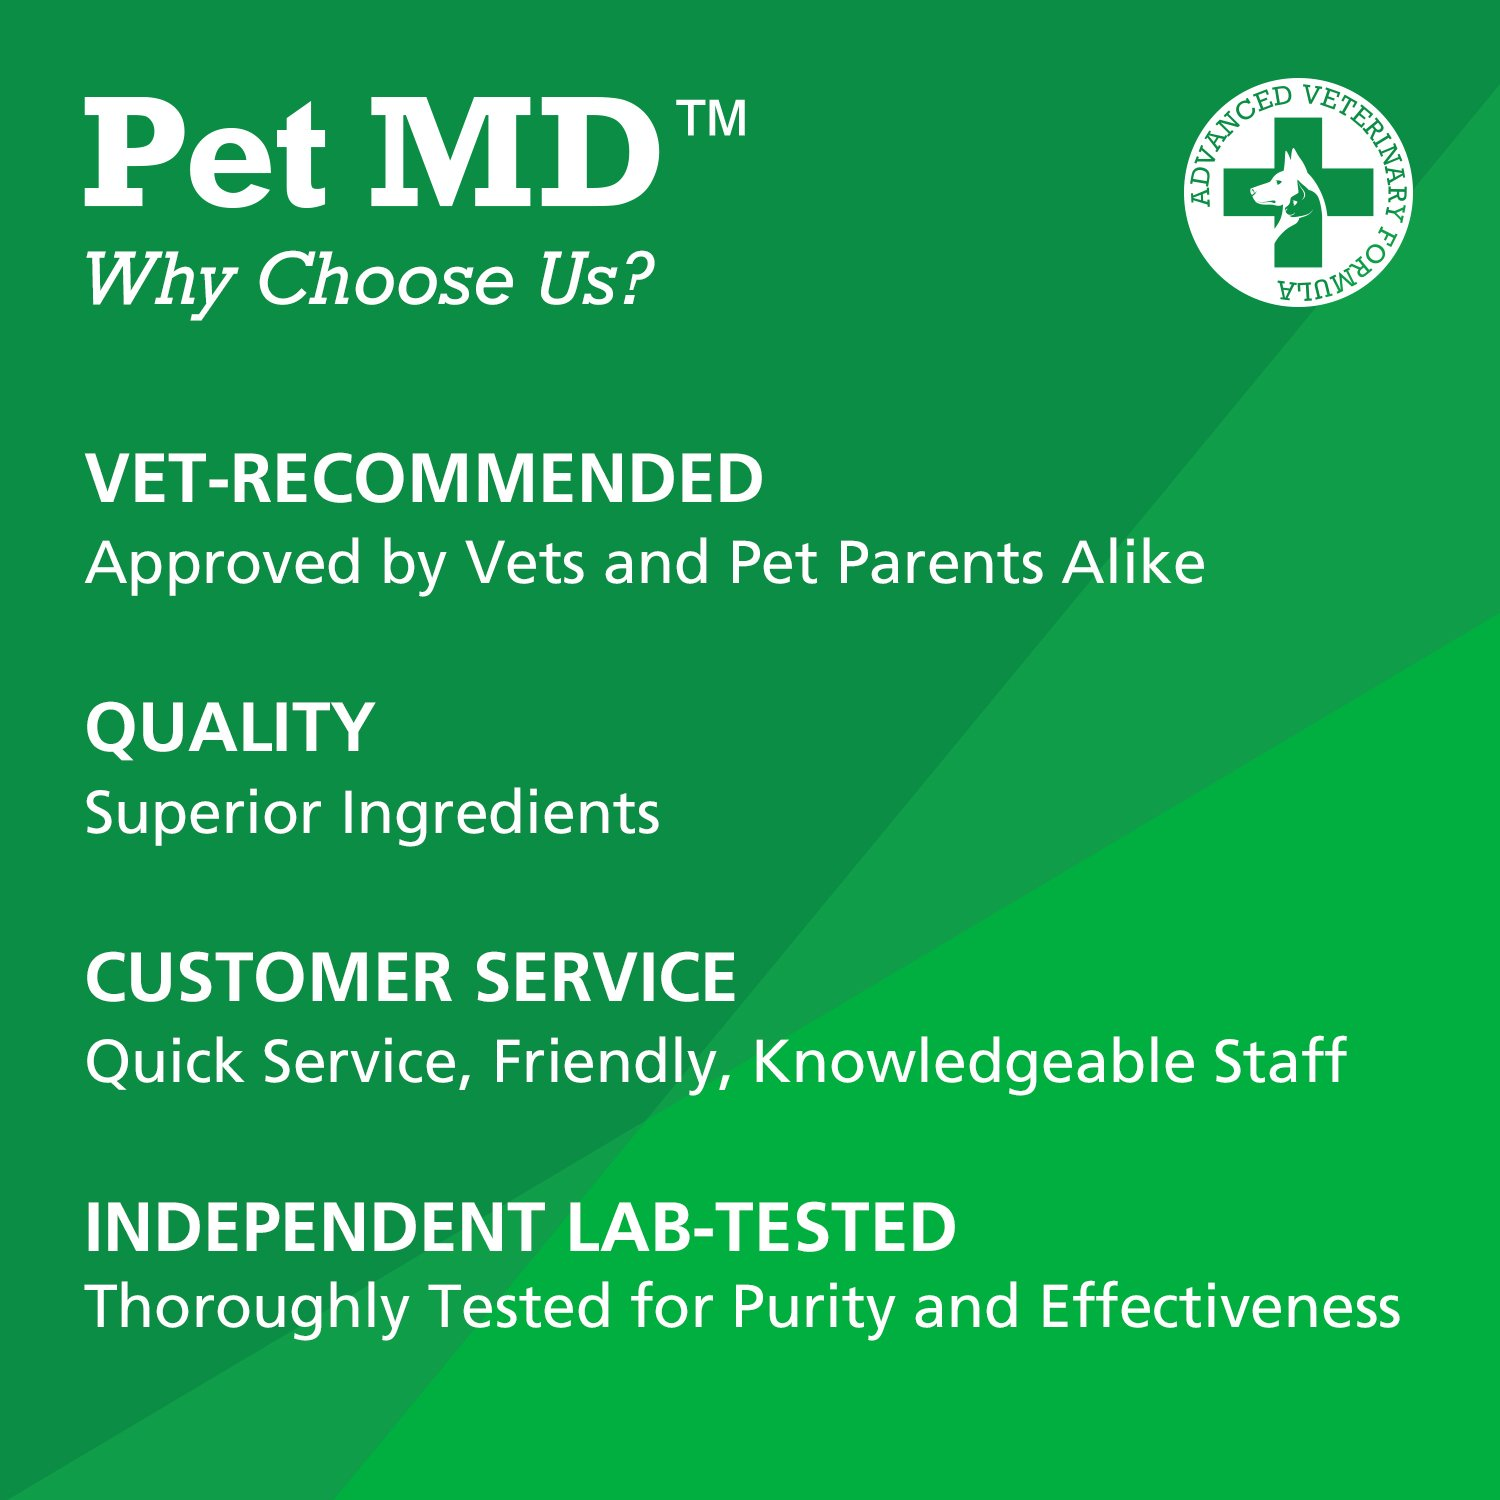 Pet MD - Canine Tabs Plus 365 Count - Advanced Multivitamins for Dogs - Natural Daily Vitamin and Mineral Nutritional Supplement - Liver Flavored Chewable Tablets by Pet MD (Image #5)